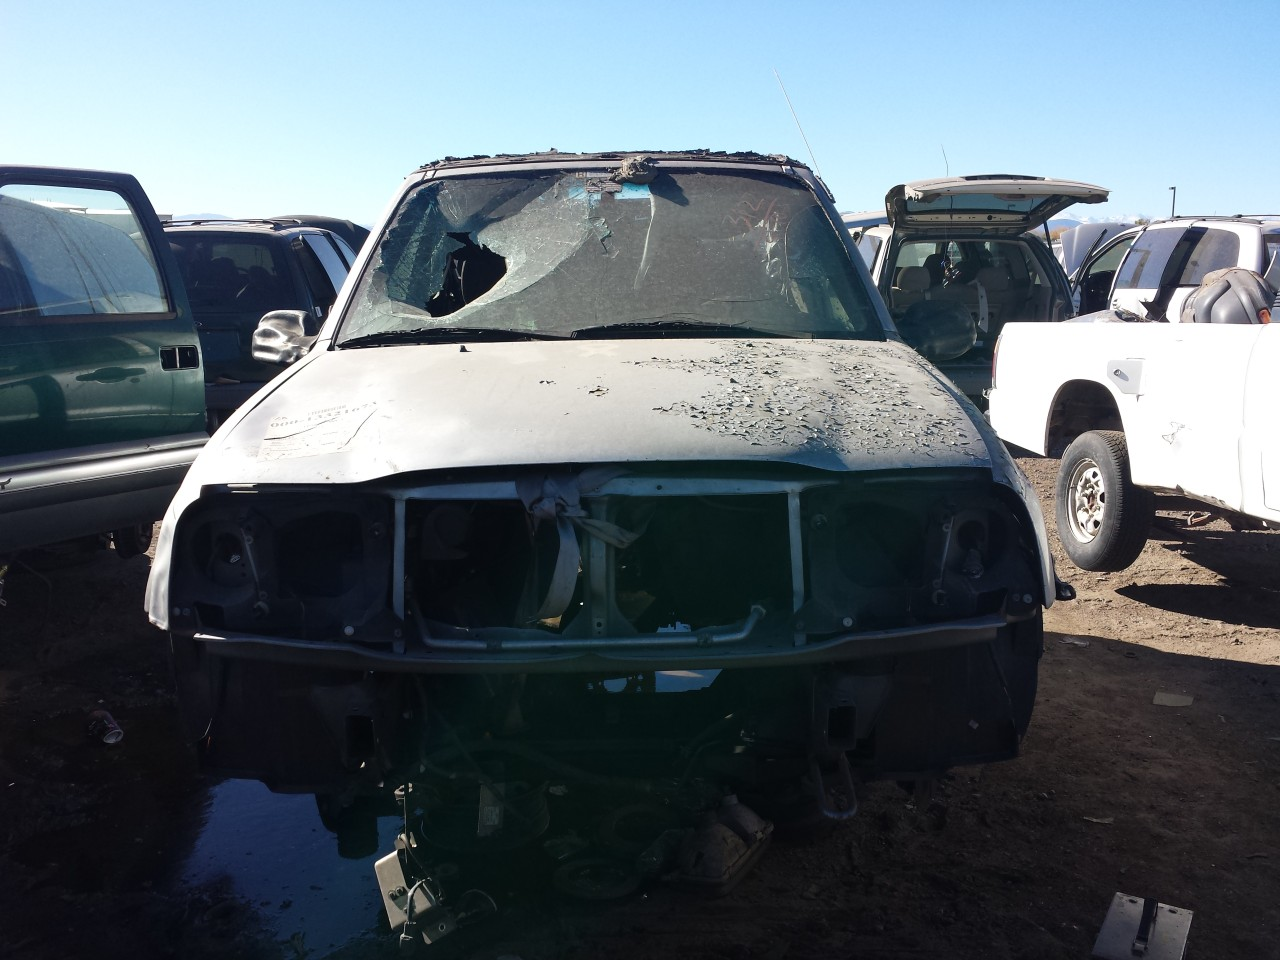 All Chevy chevy 2001 : Junkyard Find: 2001 Chevrolet Tracker ZR-2 - The Truth About Cars